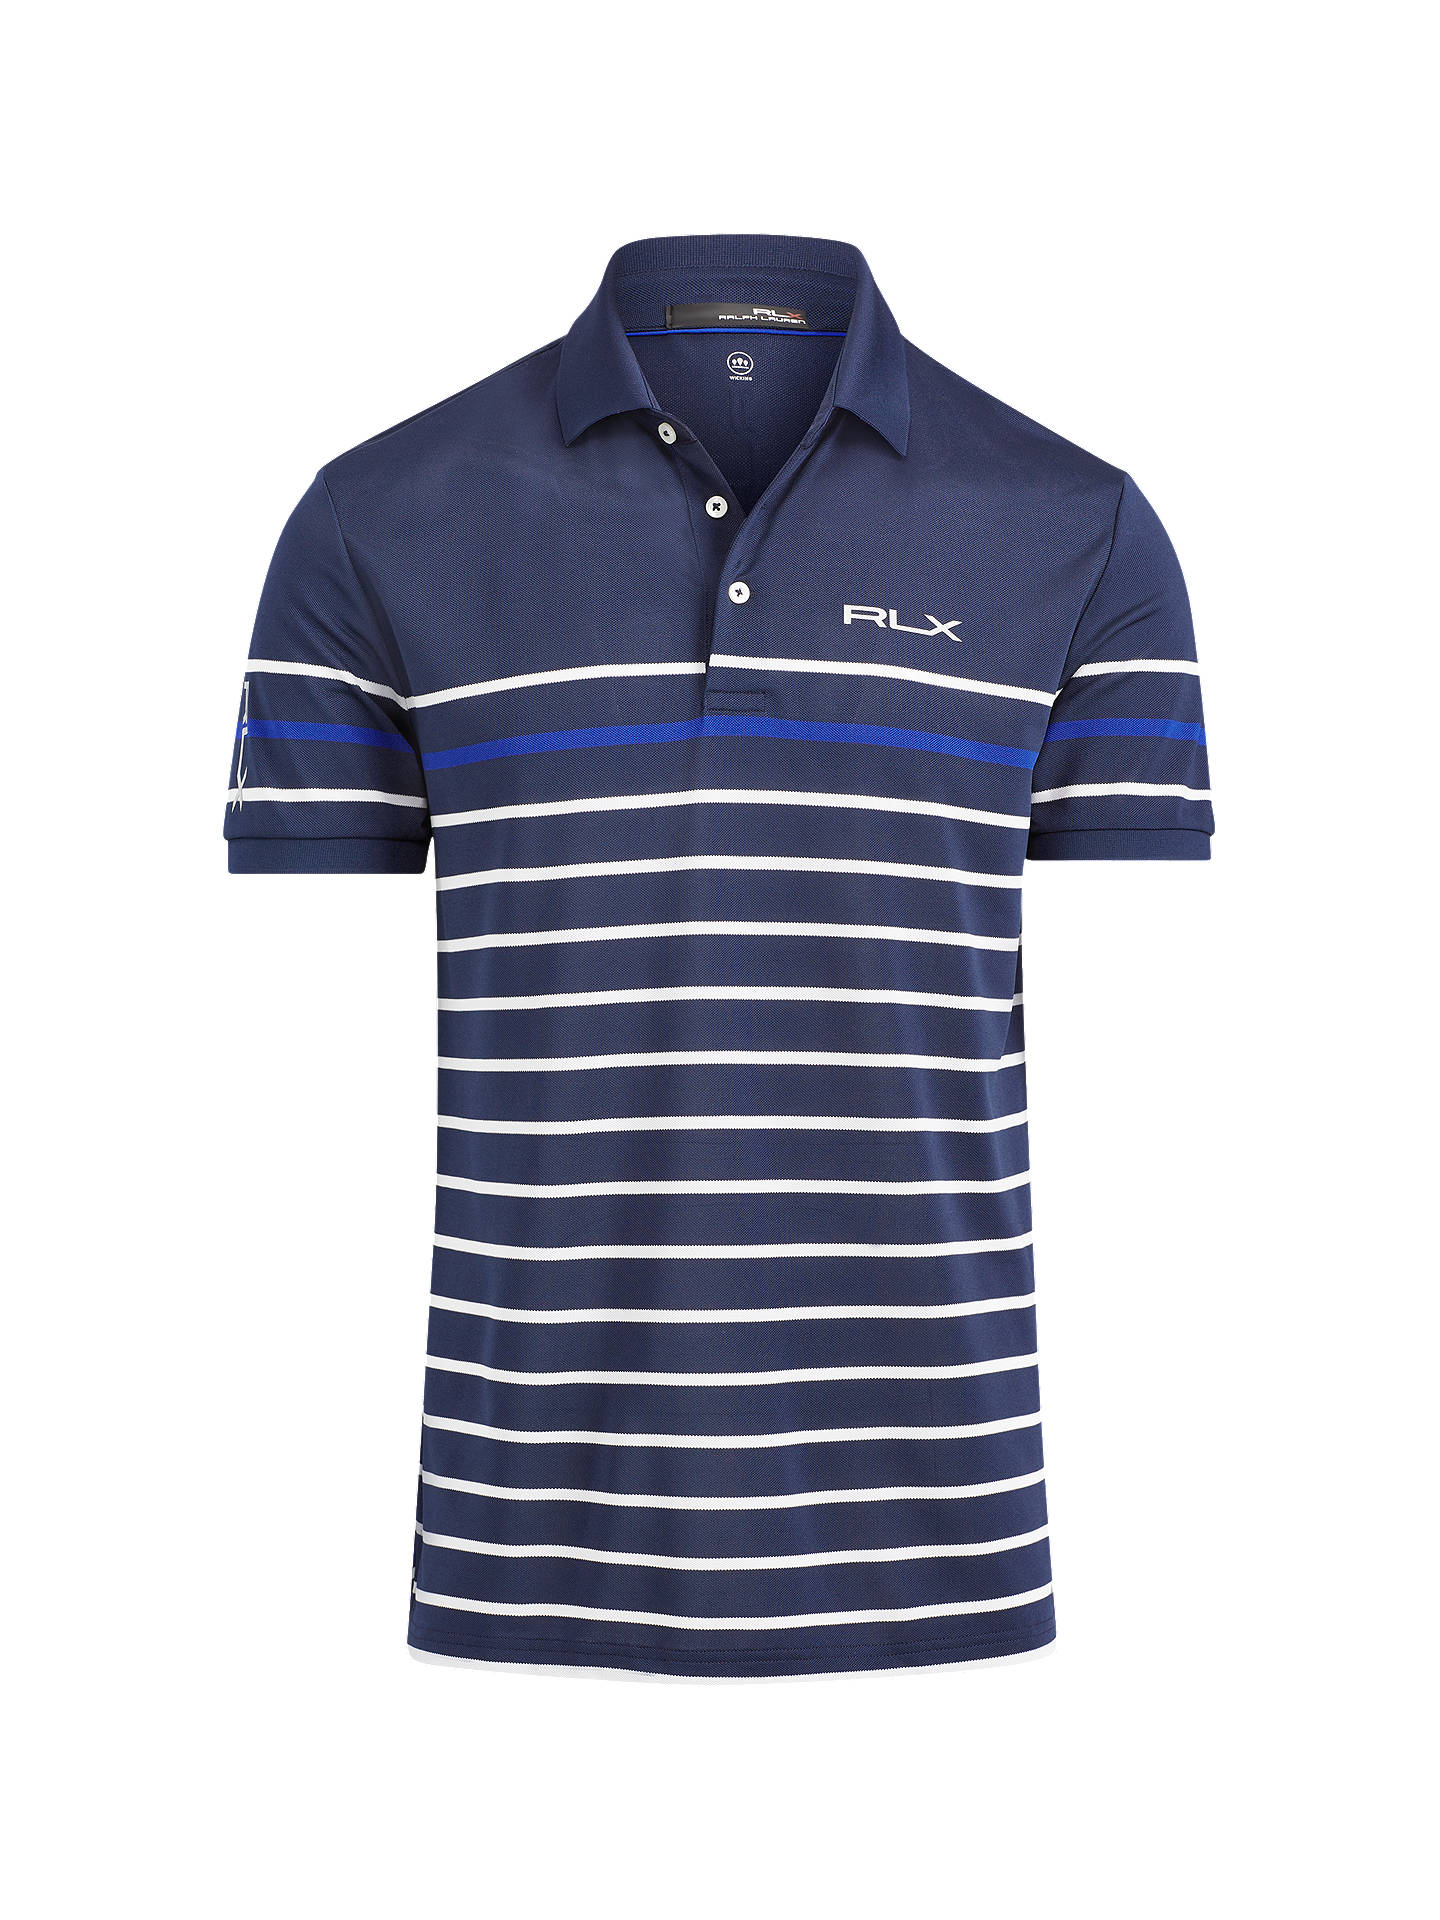 Buy Polo Golf by Ralph Lauren Tech Pique Polo Shirt, Navy/White/Royal, S Online at johnlewis.com